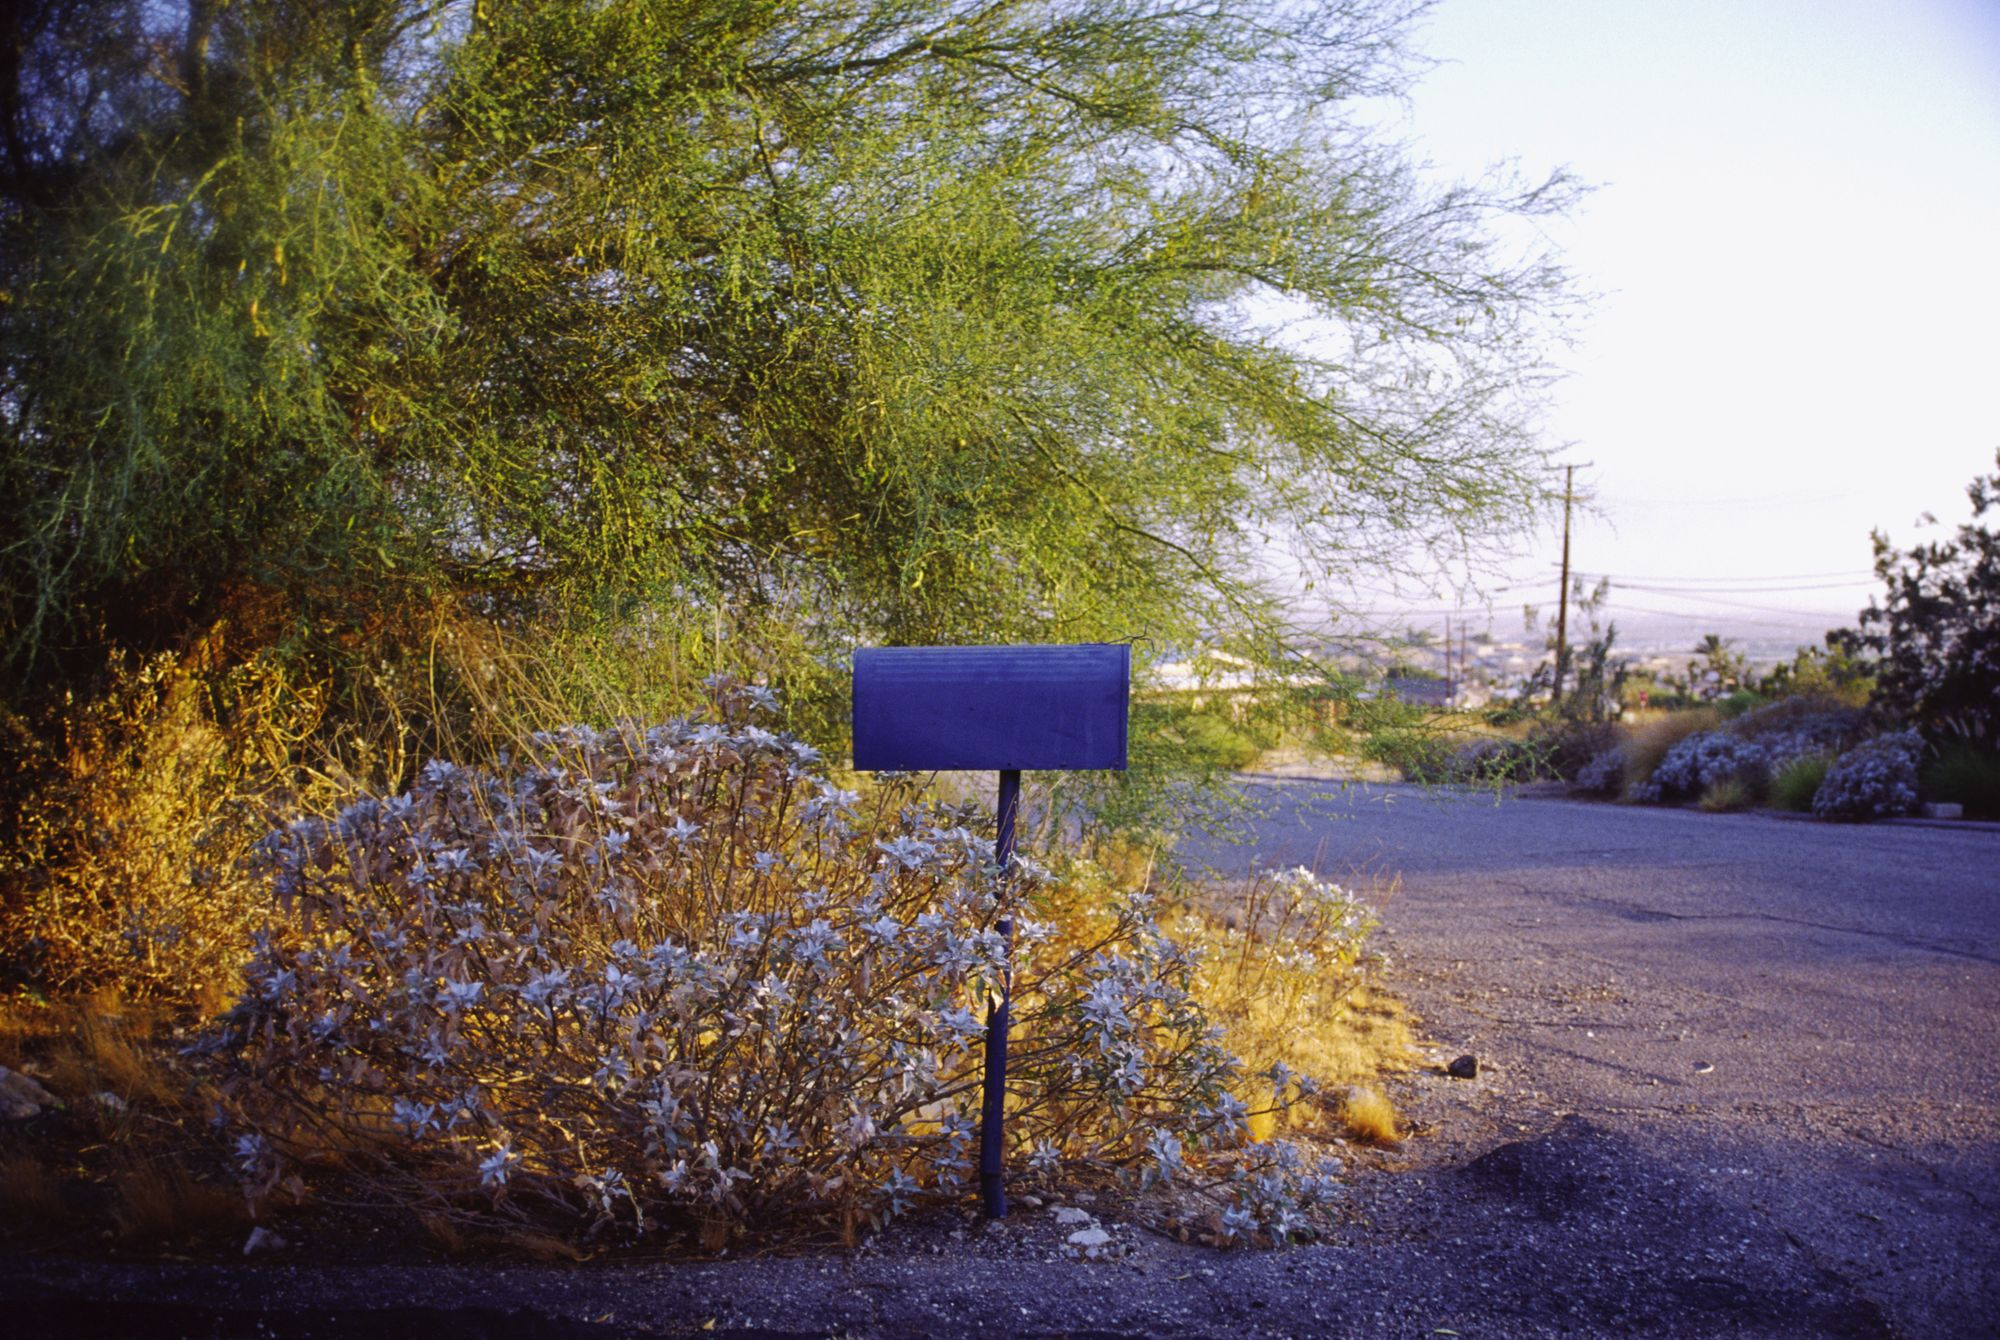 Photo of a mailbox seen from the side in the midst of flowers. The box looks onto an empty road at either sunrise or sunset. There's a great line of trees behind it and a view of a city in the distance.